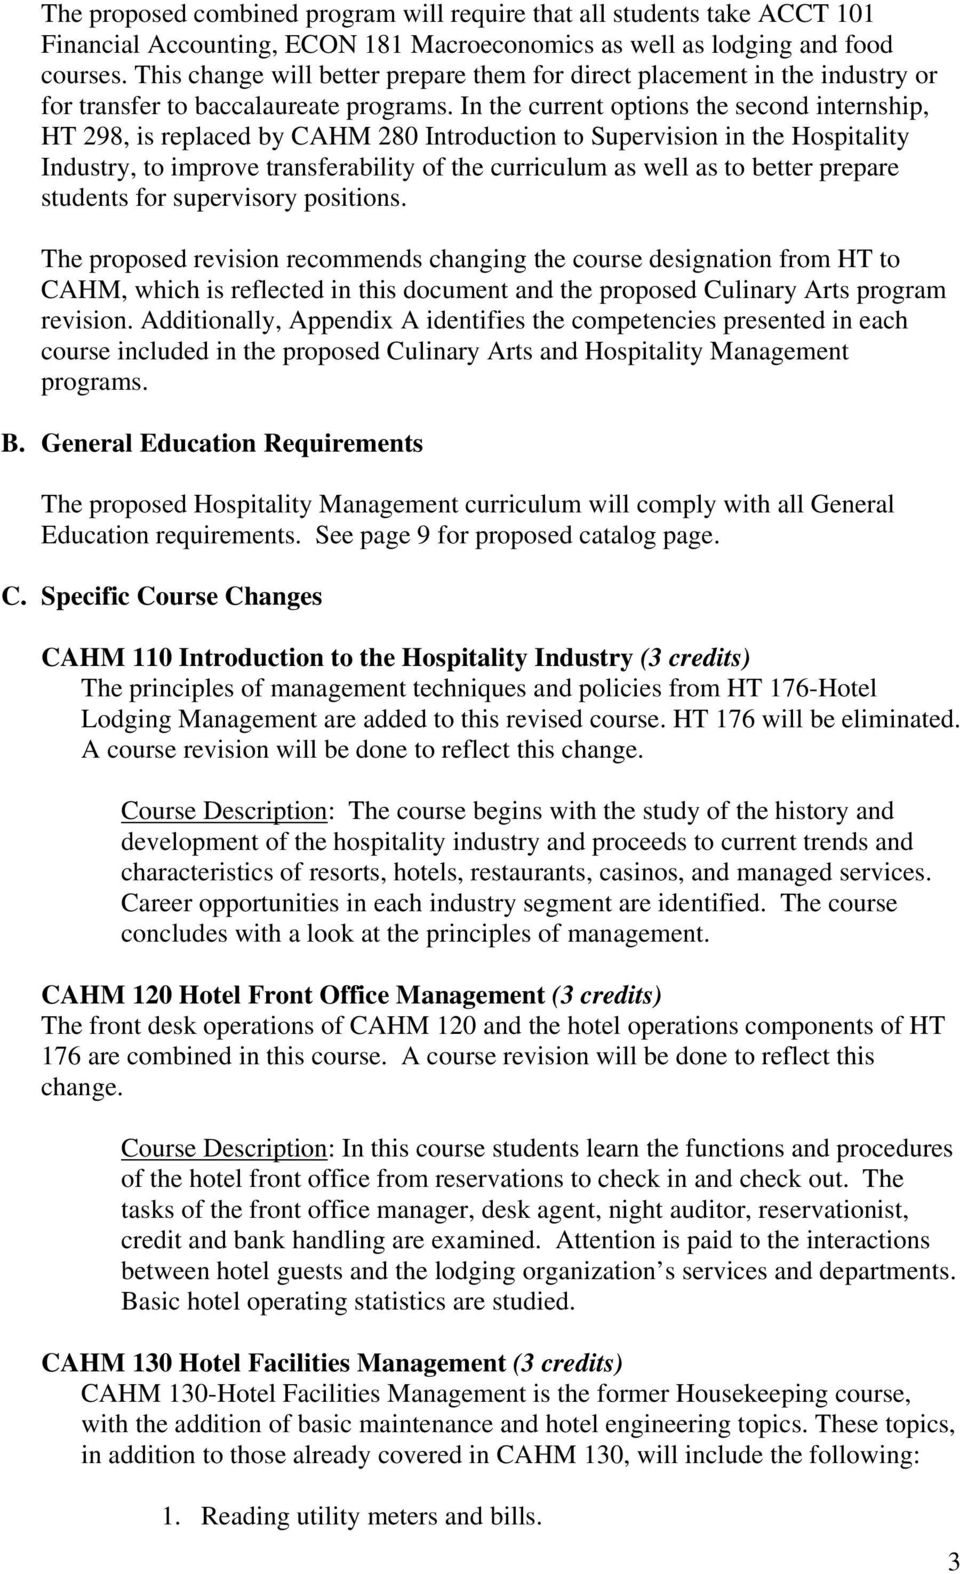 Proposal for Program Revision  Hospitality Management  Business and